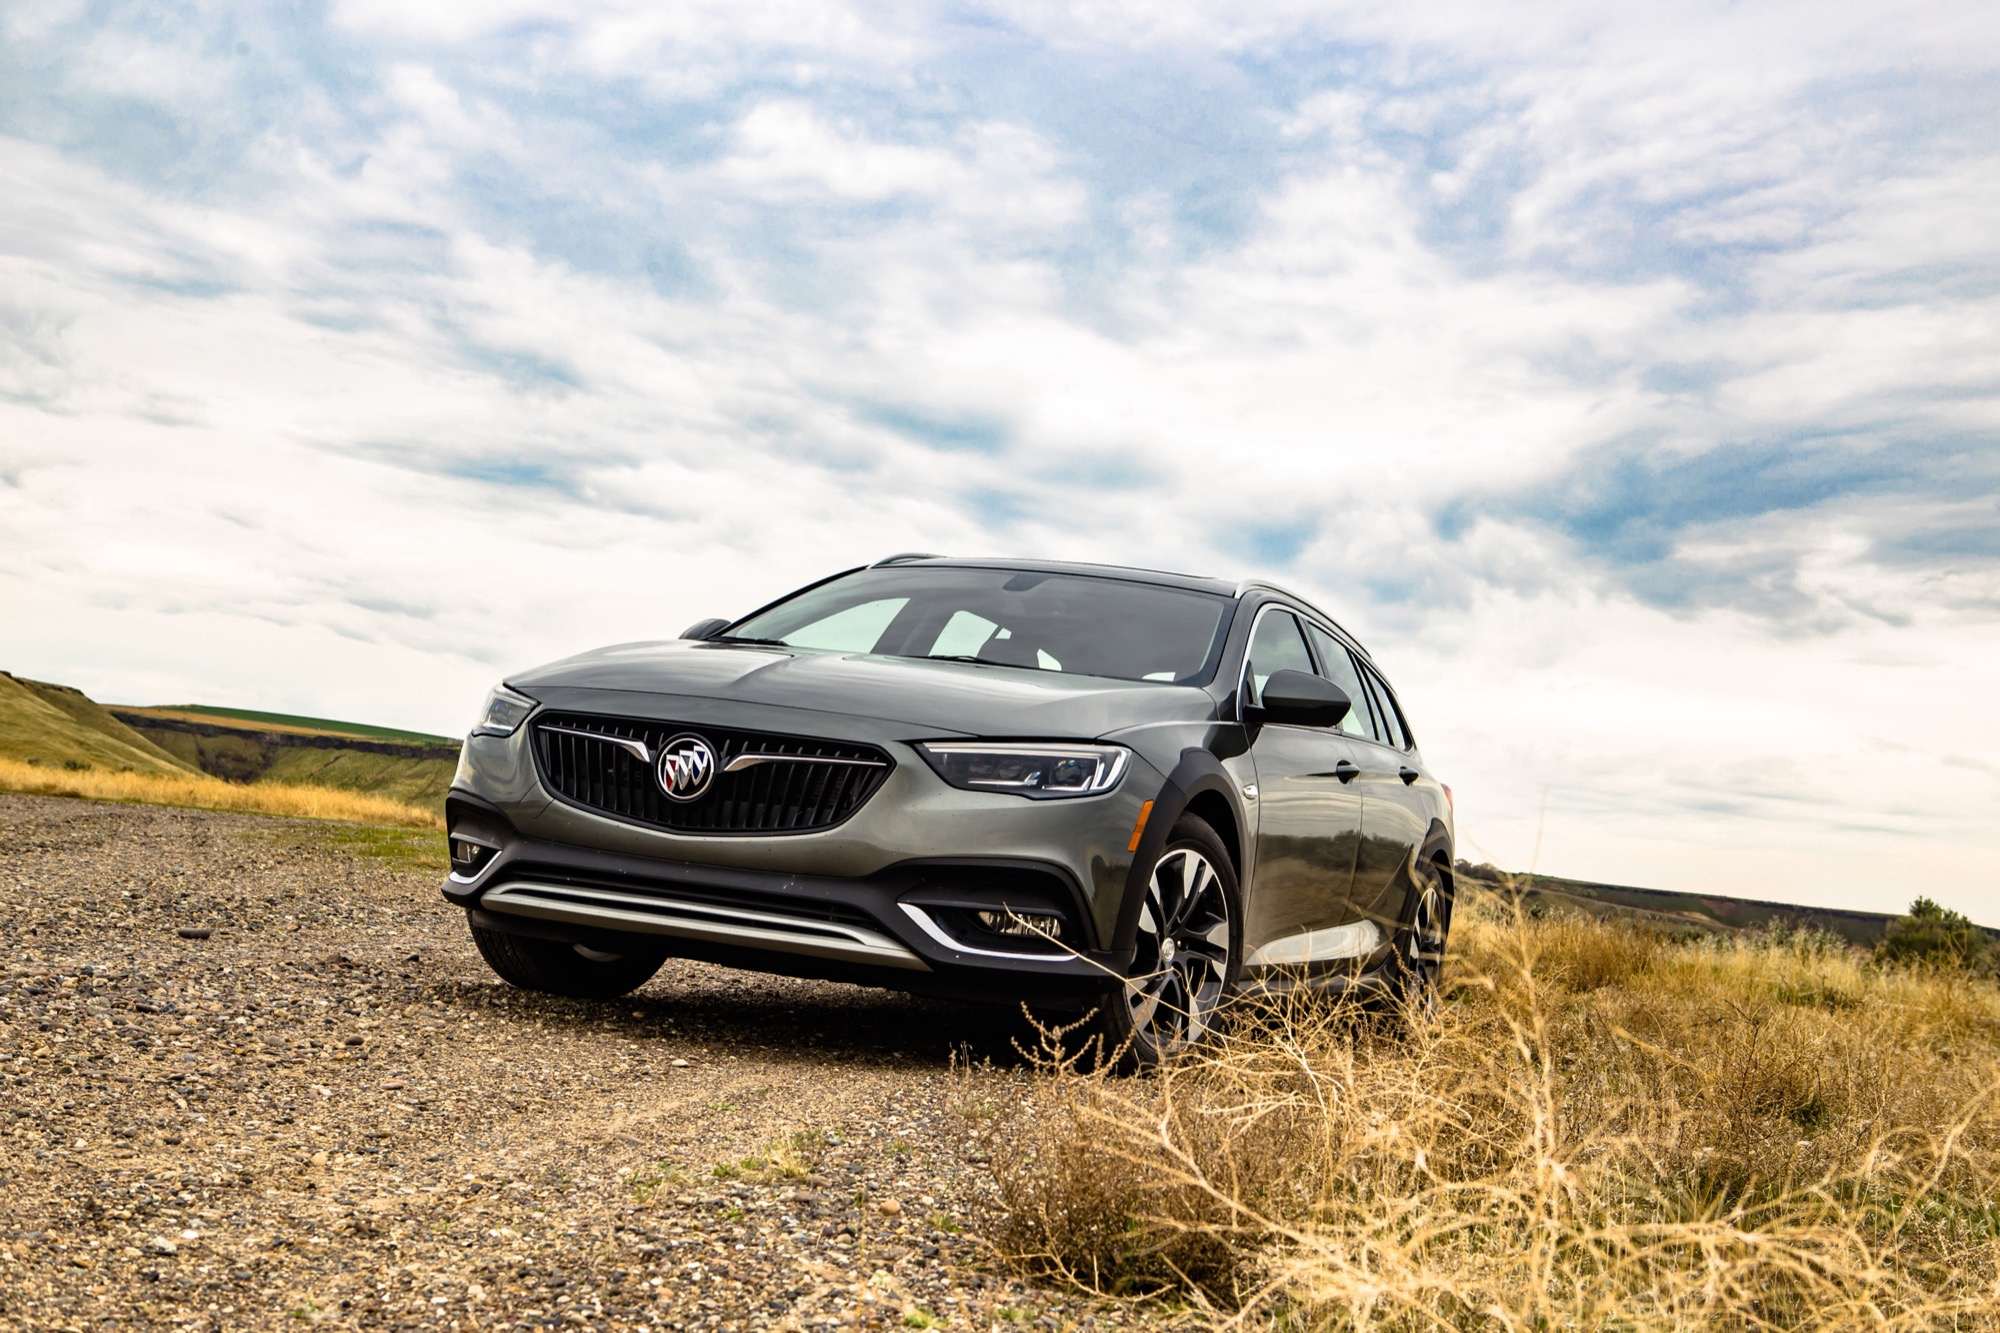 Does Buick Even Want To Sell The Regal Tourx? | Gm Authority 2022 Buick Regal Tourx Price, Lease, Awd